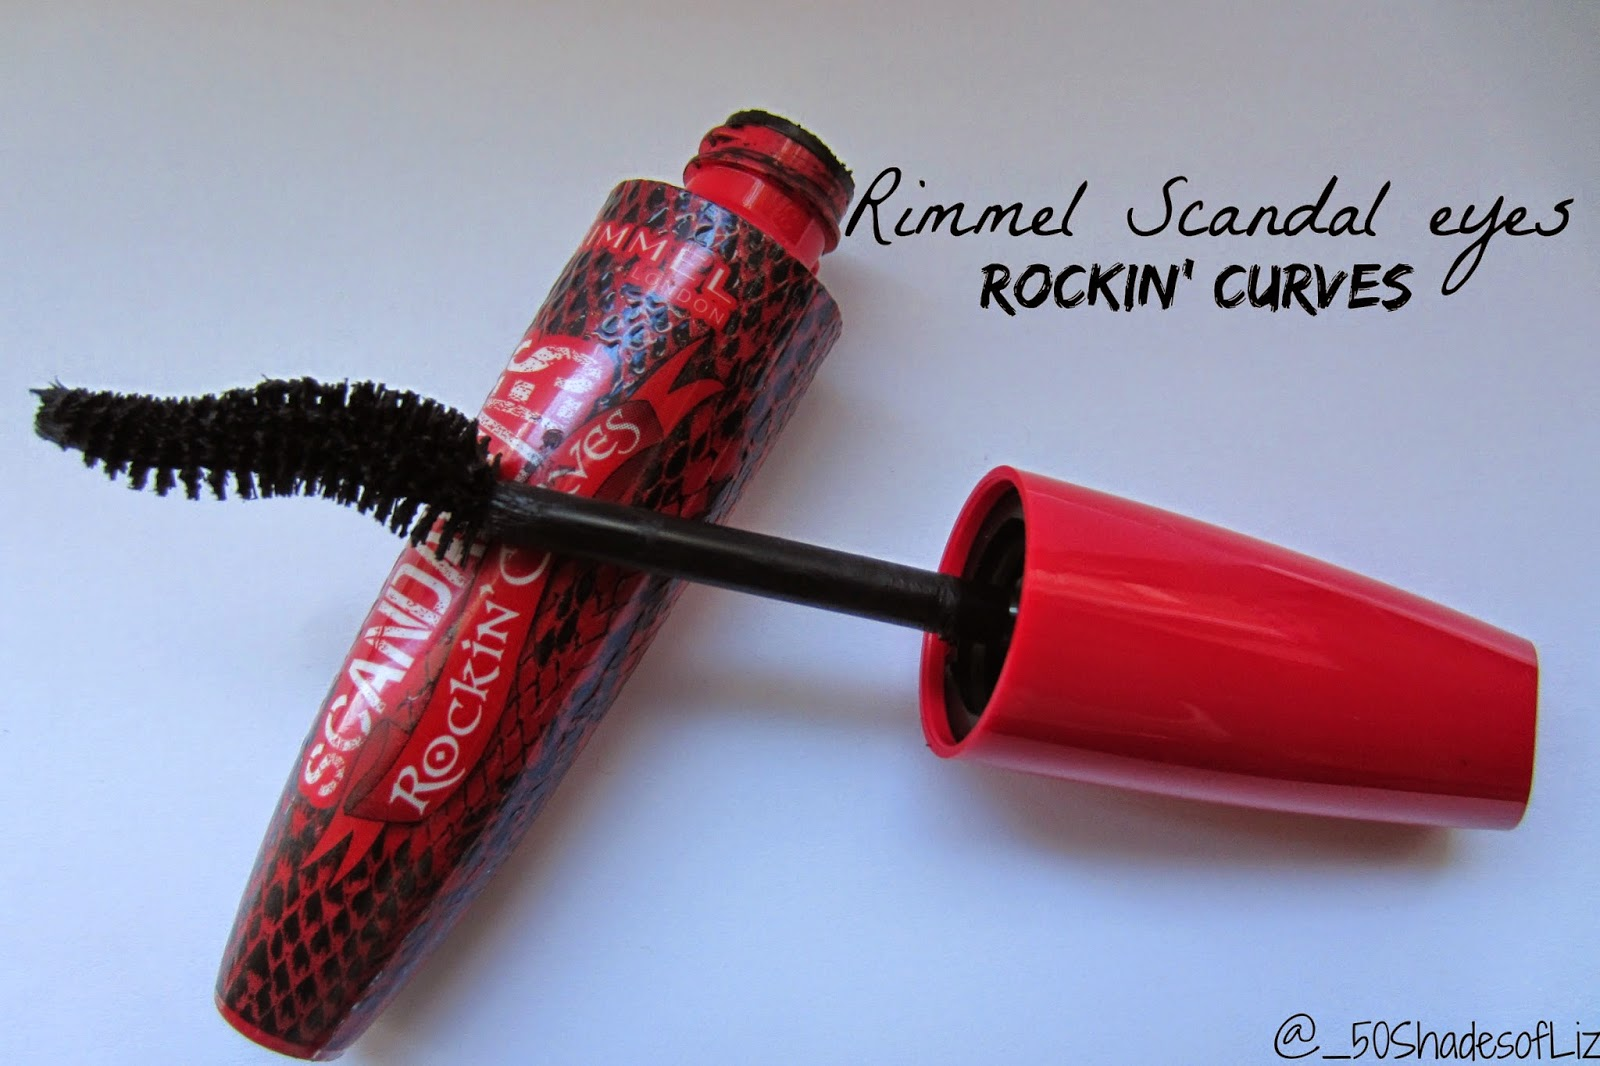 Rimmel Scandal Eyes Rockin Curves Mascara